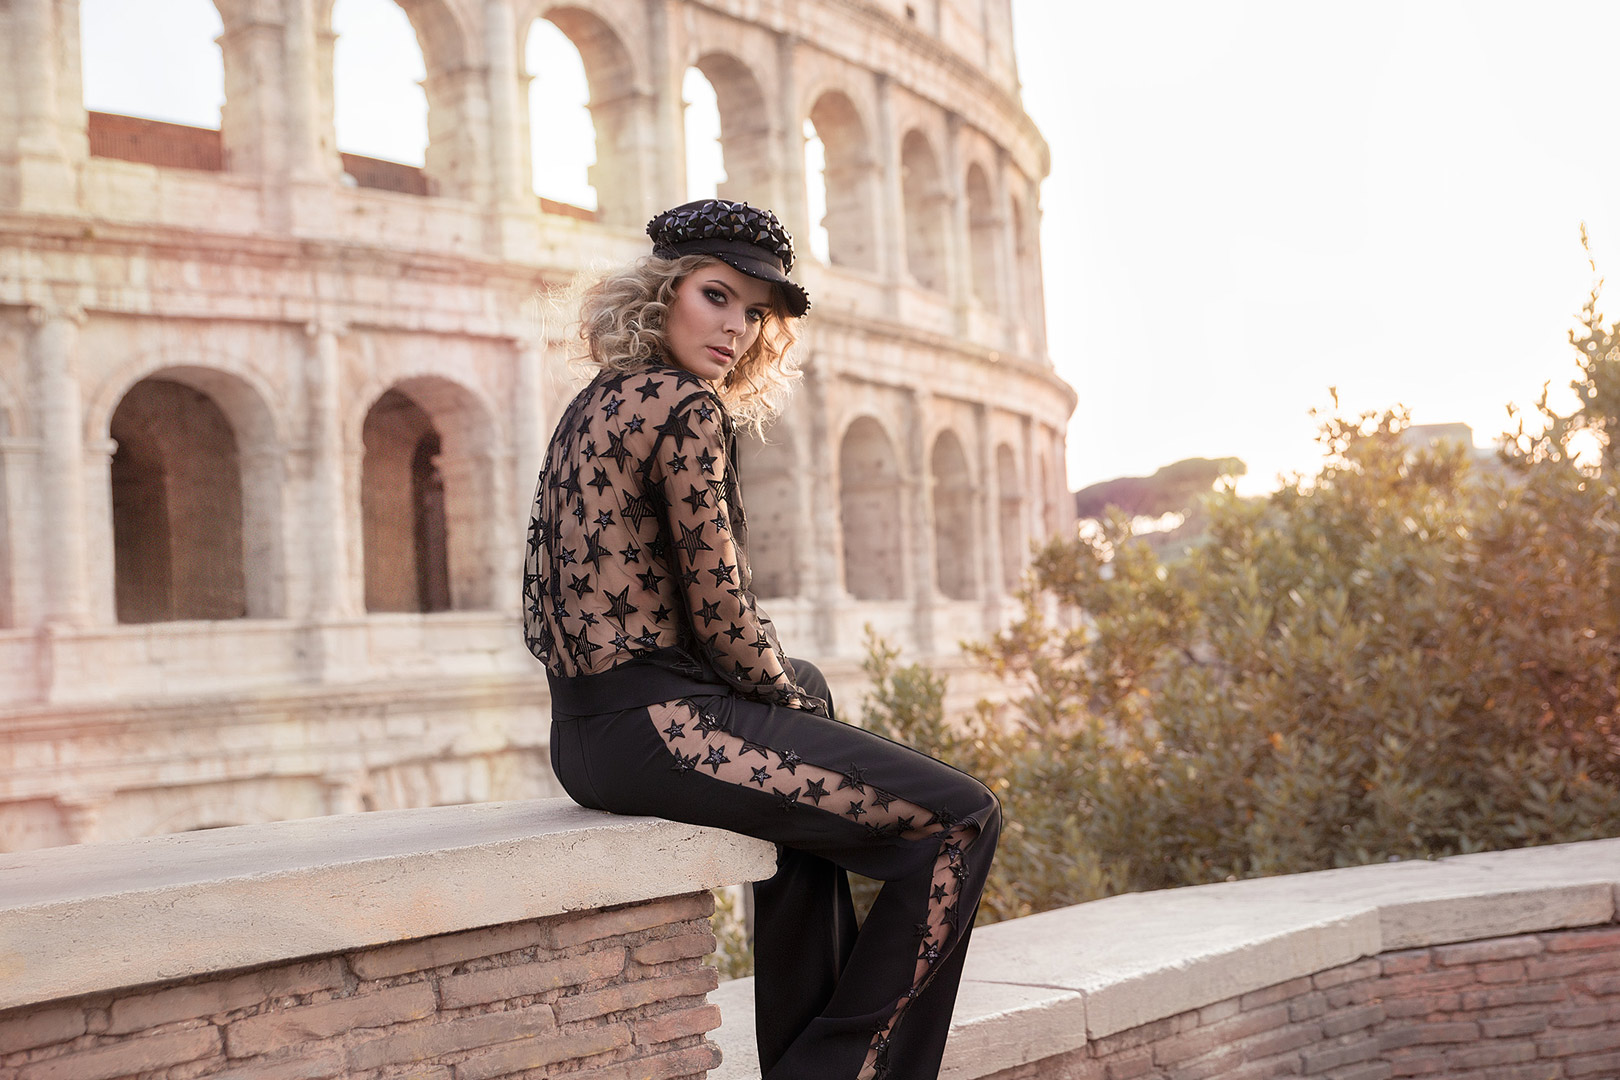 Dream portrait session experience in Rome